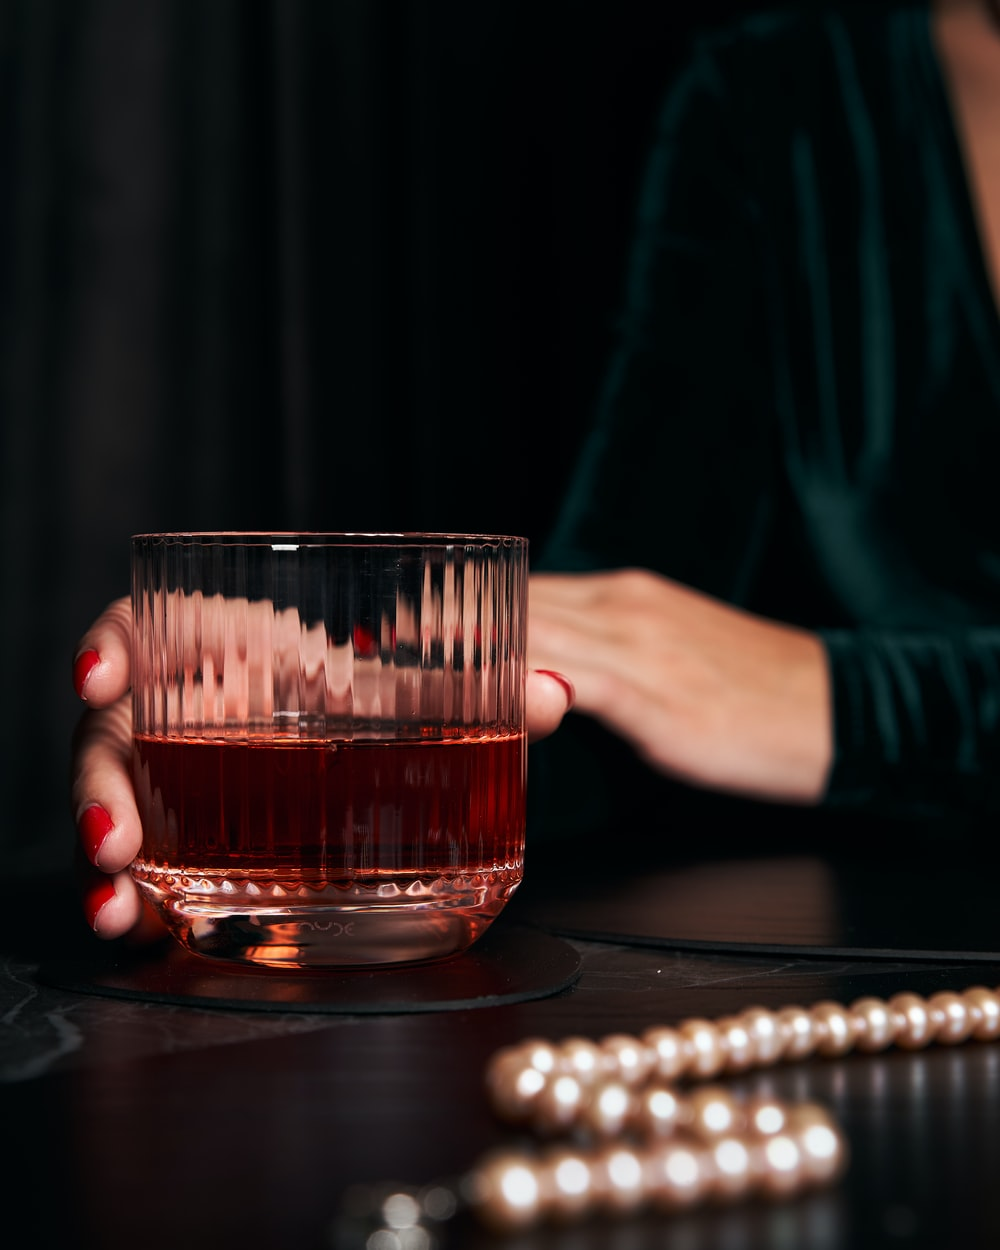 person holding clear drinking glass with red liquid